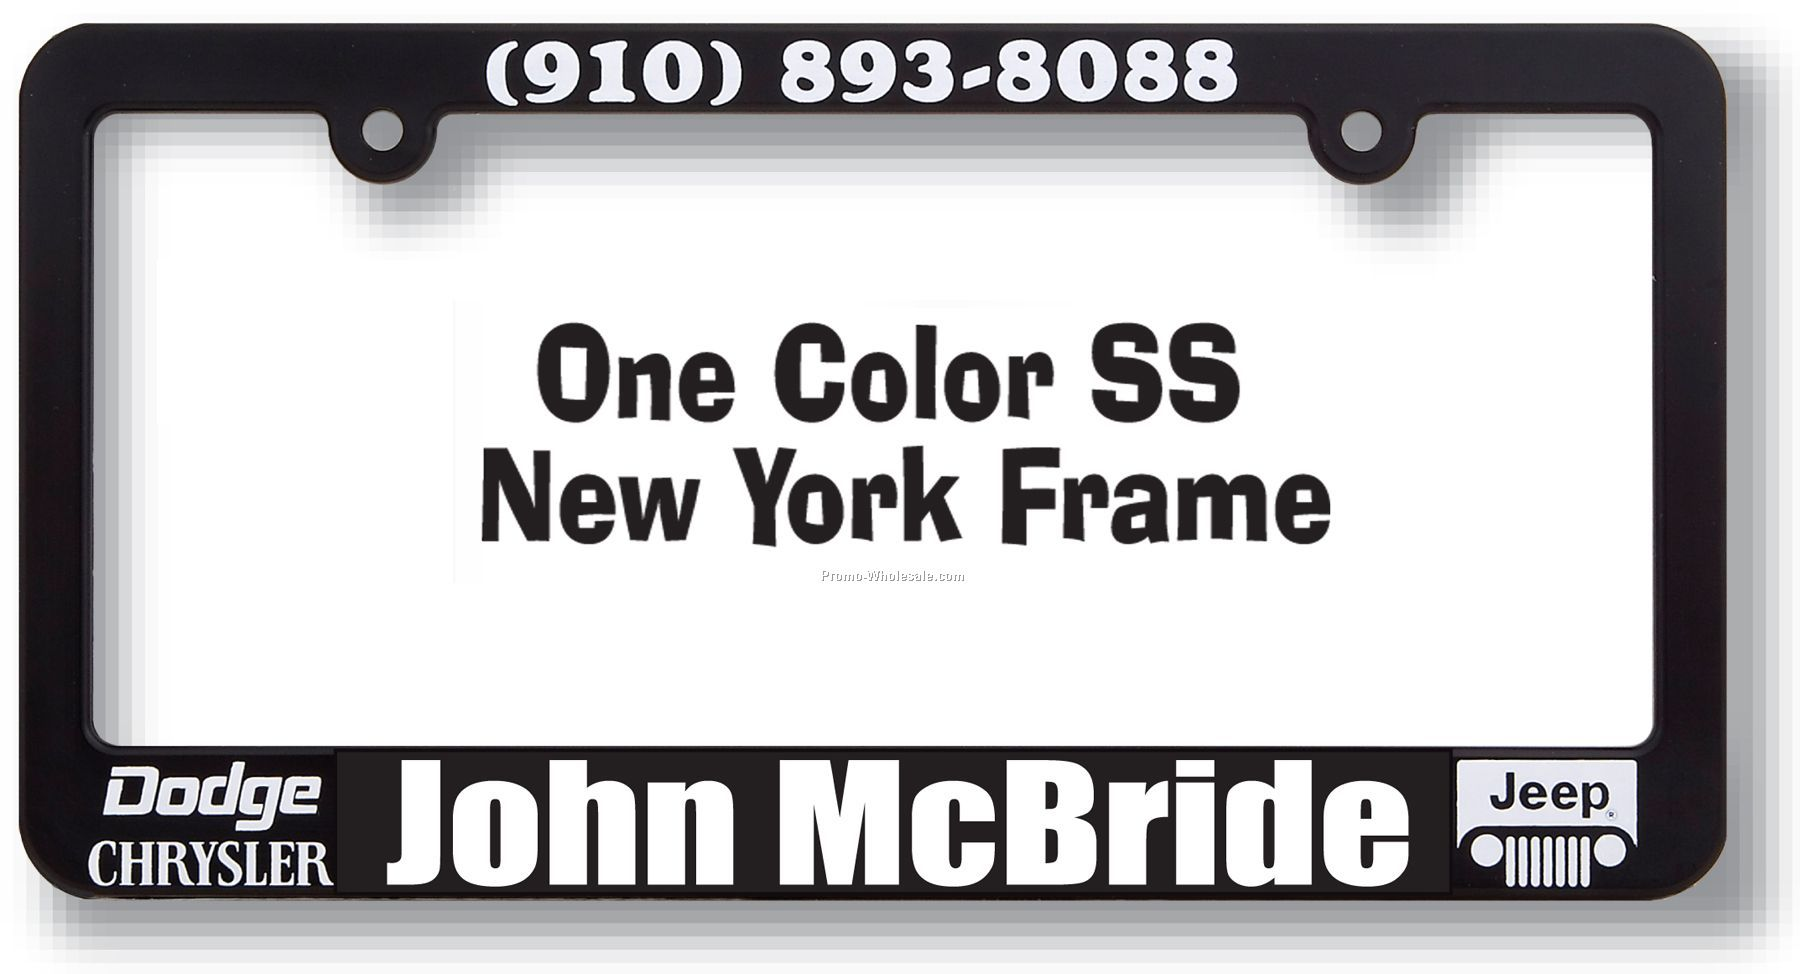 license frameschina wholesale license frames